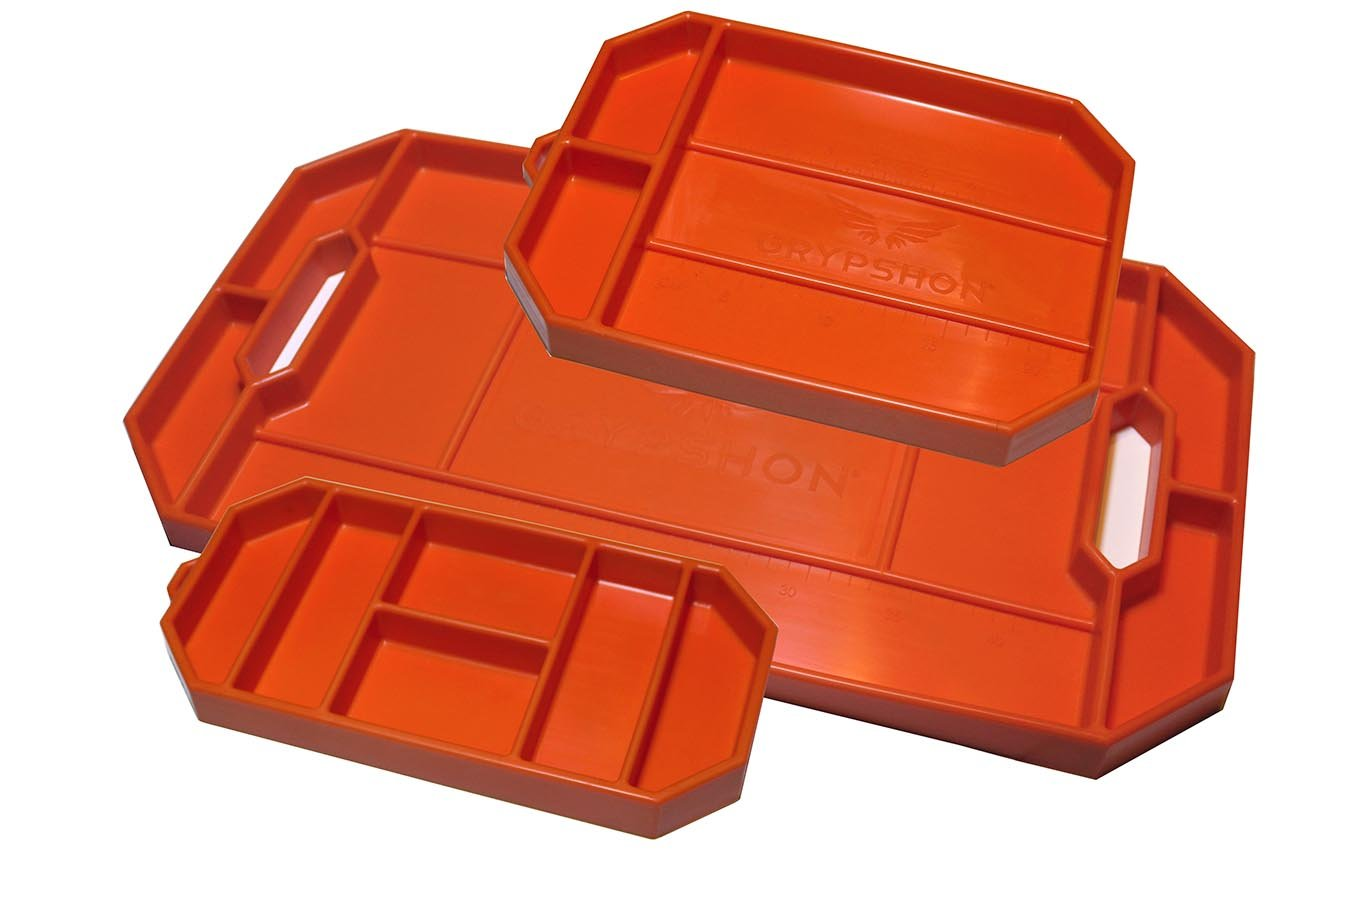 Grypmat Multi-Purpose Portable Tool Tray and Surface Protector (Trio Pack)